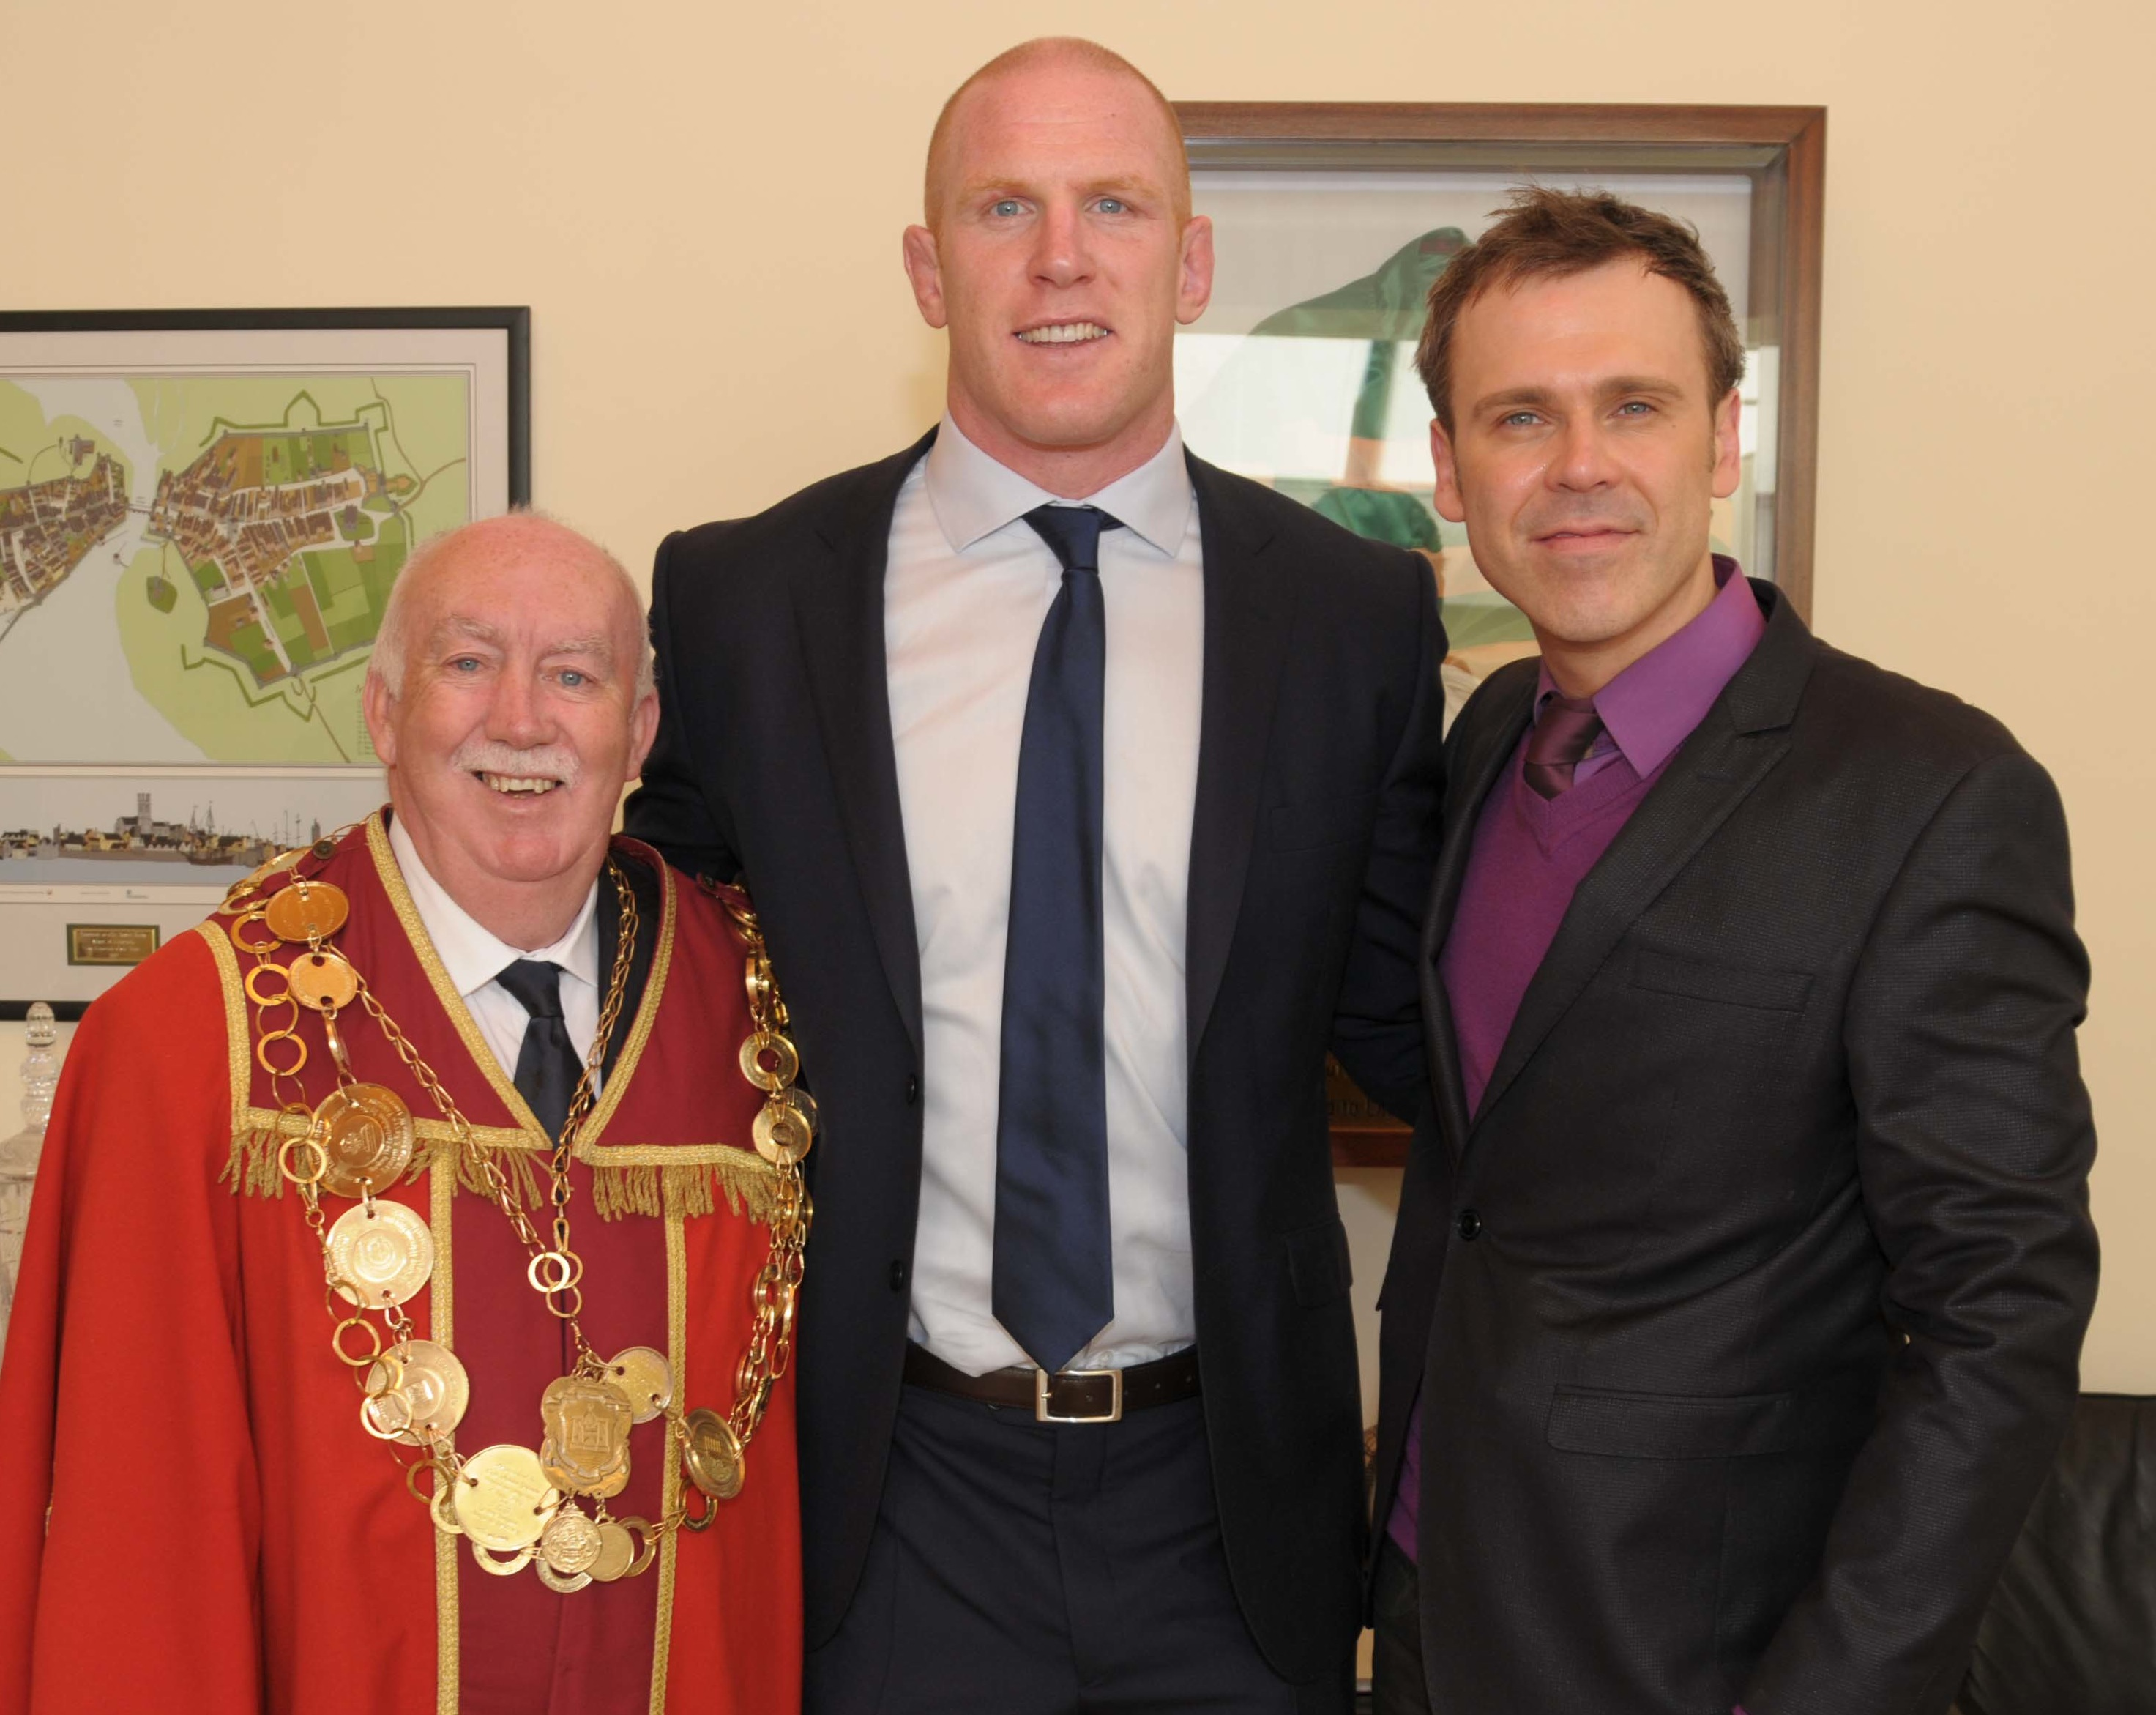 At City Hall, Richard with Mayor Jim Long and Paul O Connell who received the Freedom of Limerick. Photo by Paul Mullins